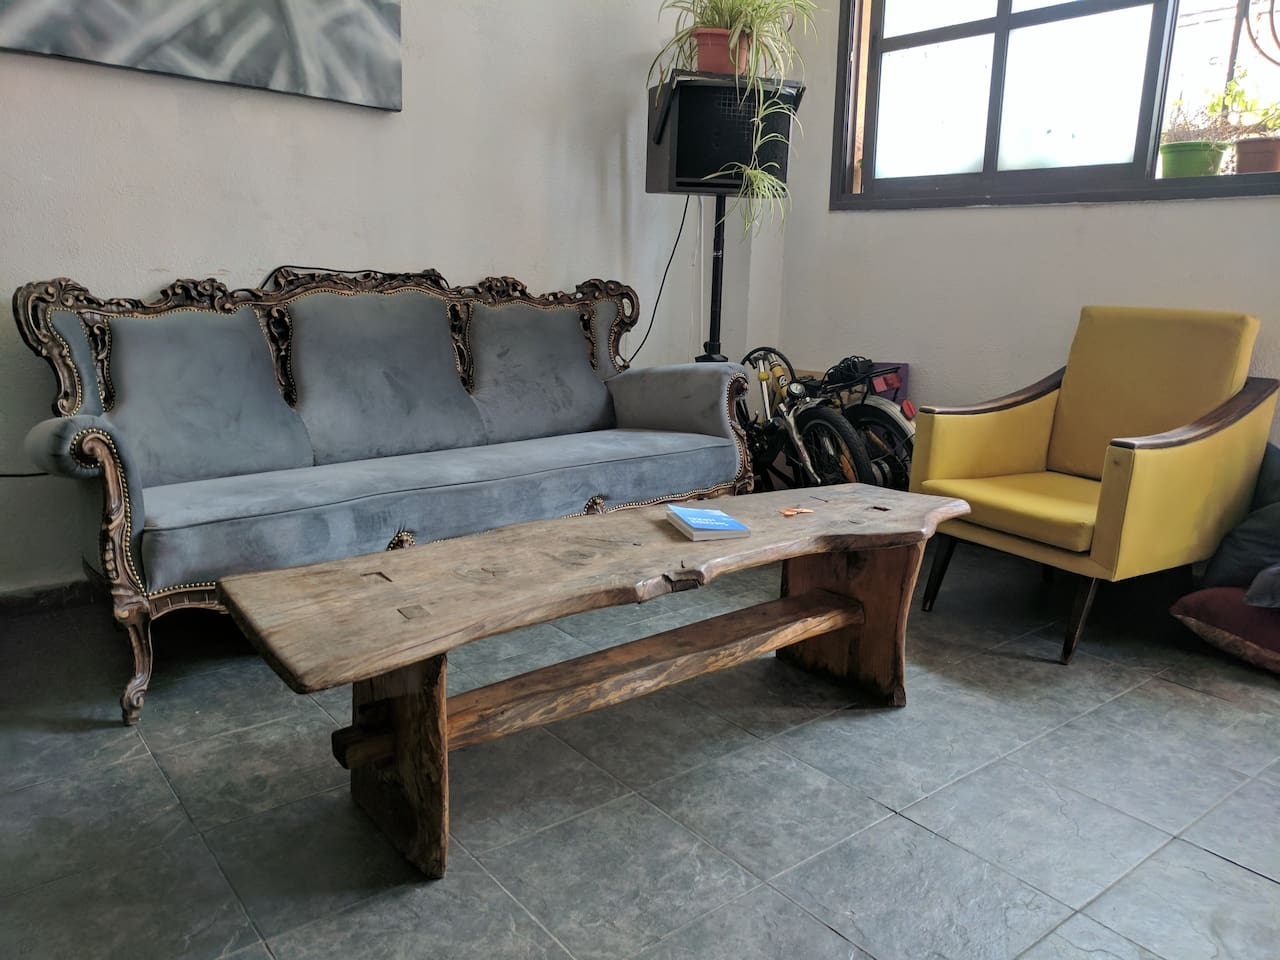 Lounge and the renovated sofa :)